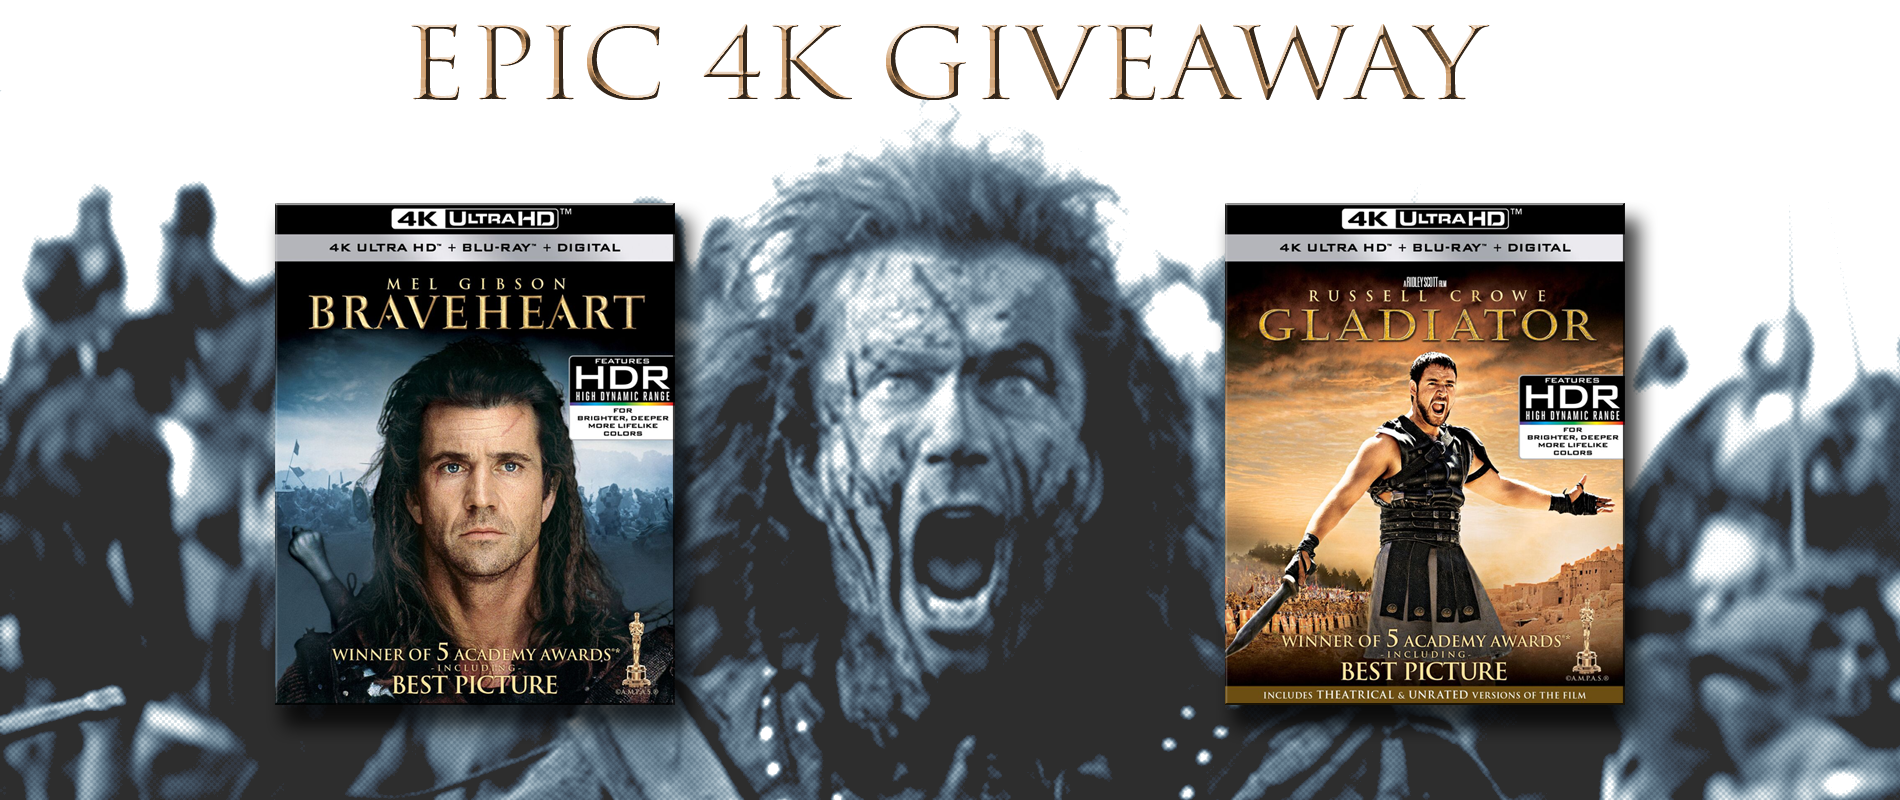 Are You Not Entertained? Enter to Win GLADIATOR and